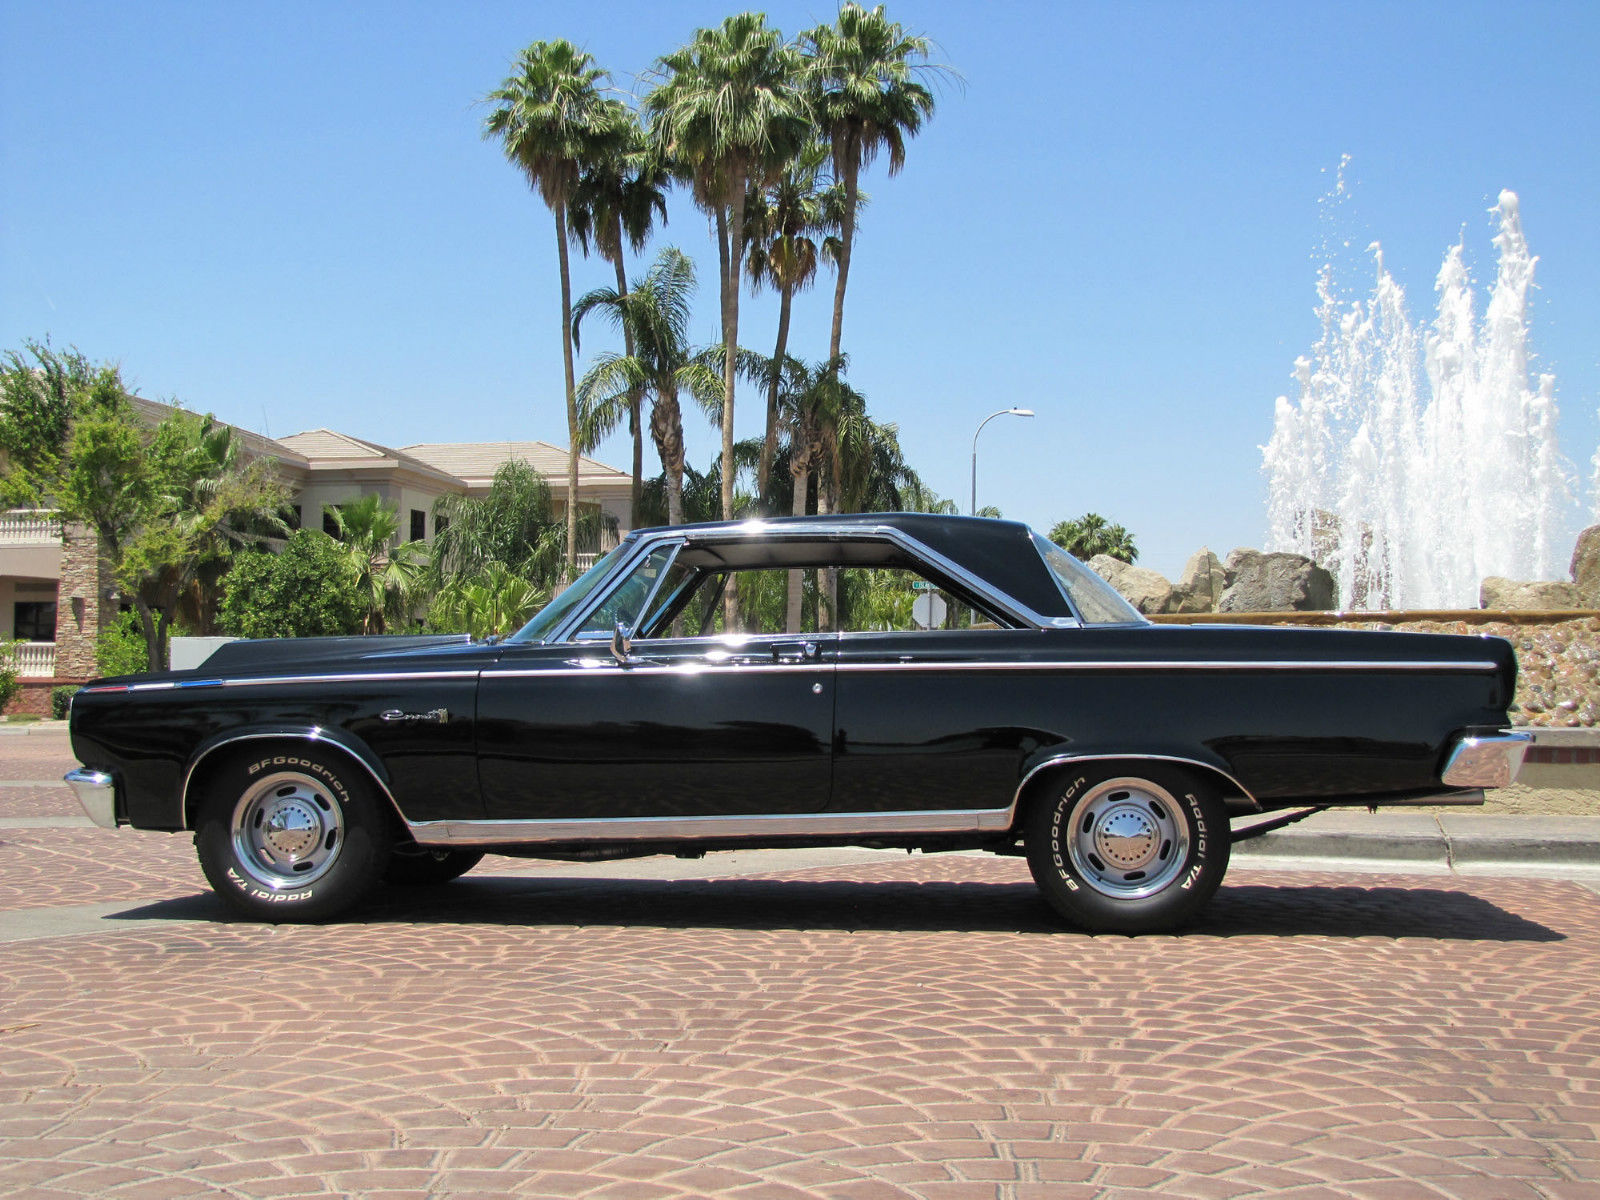 1965 Dodge Coronet 500 Two Door Coupe Max Wedge 426 Ci Dual 4 Bbl Cross Ram 4 Sd